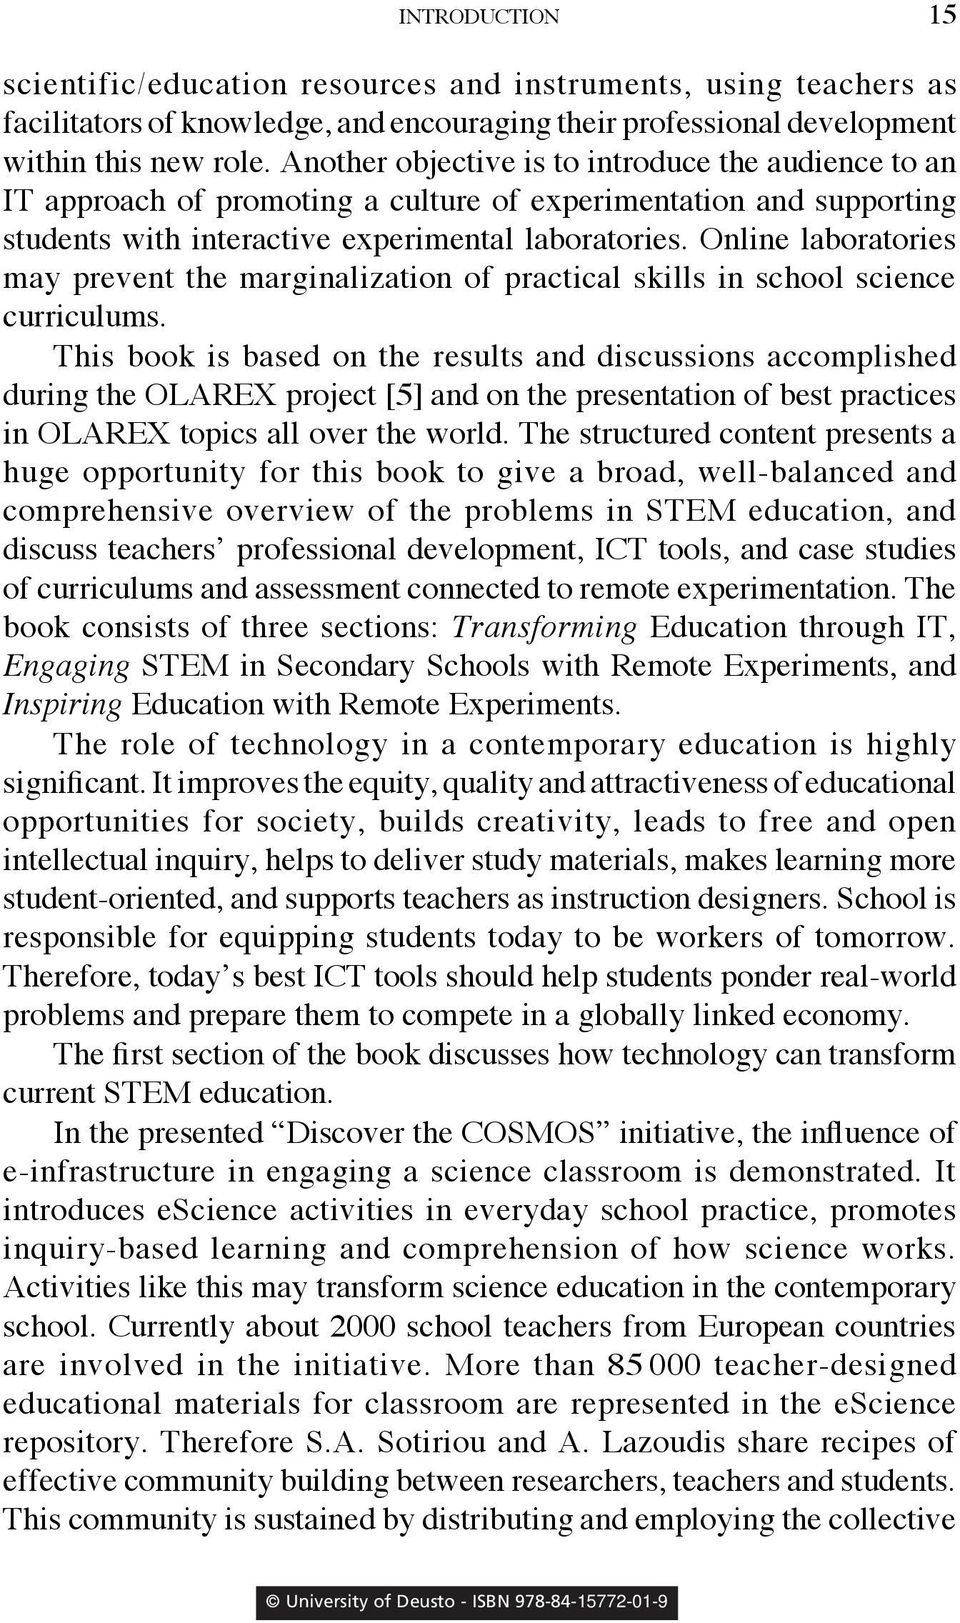 Online laboratories may prevent the marginalization of practical skills in school science curriculums.